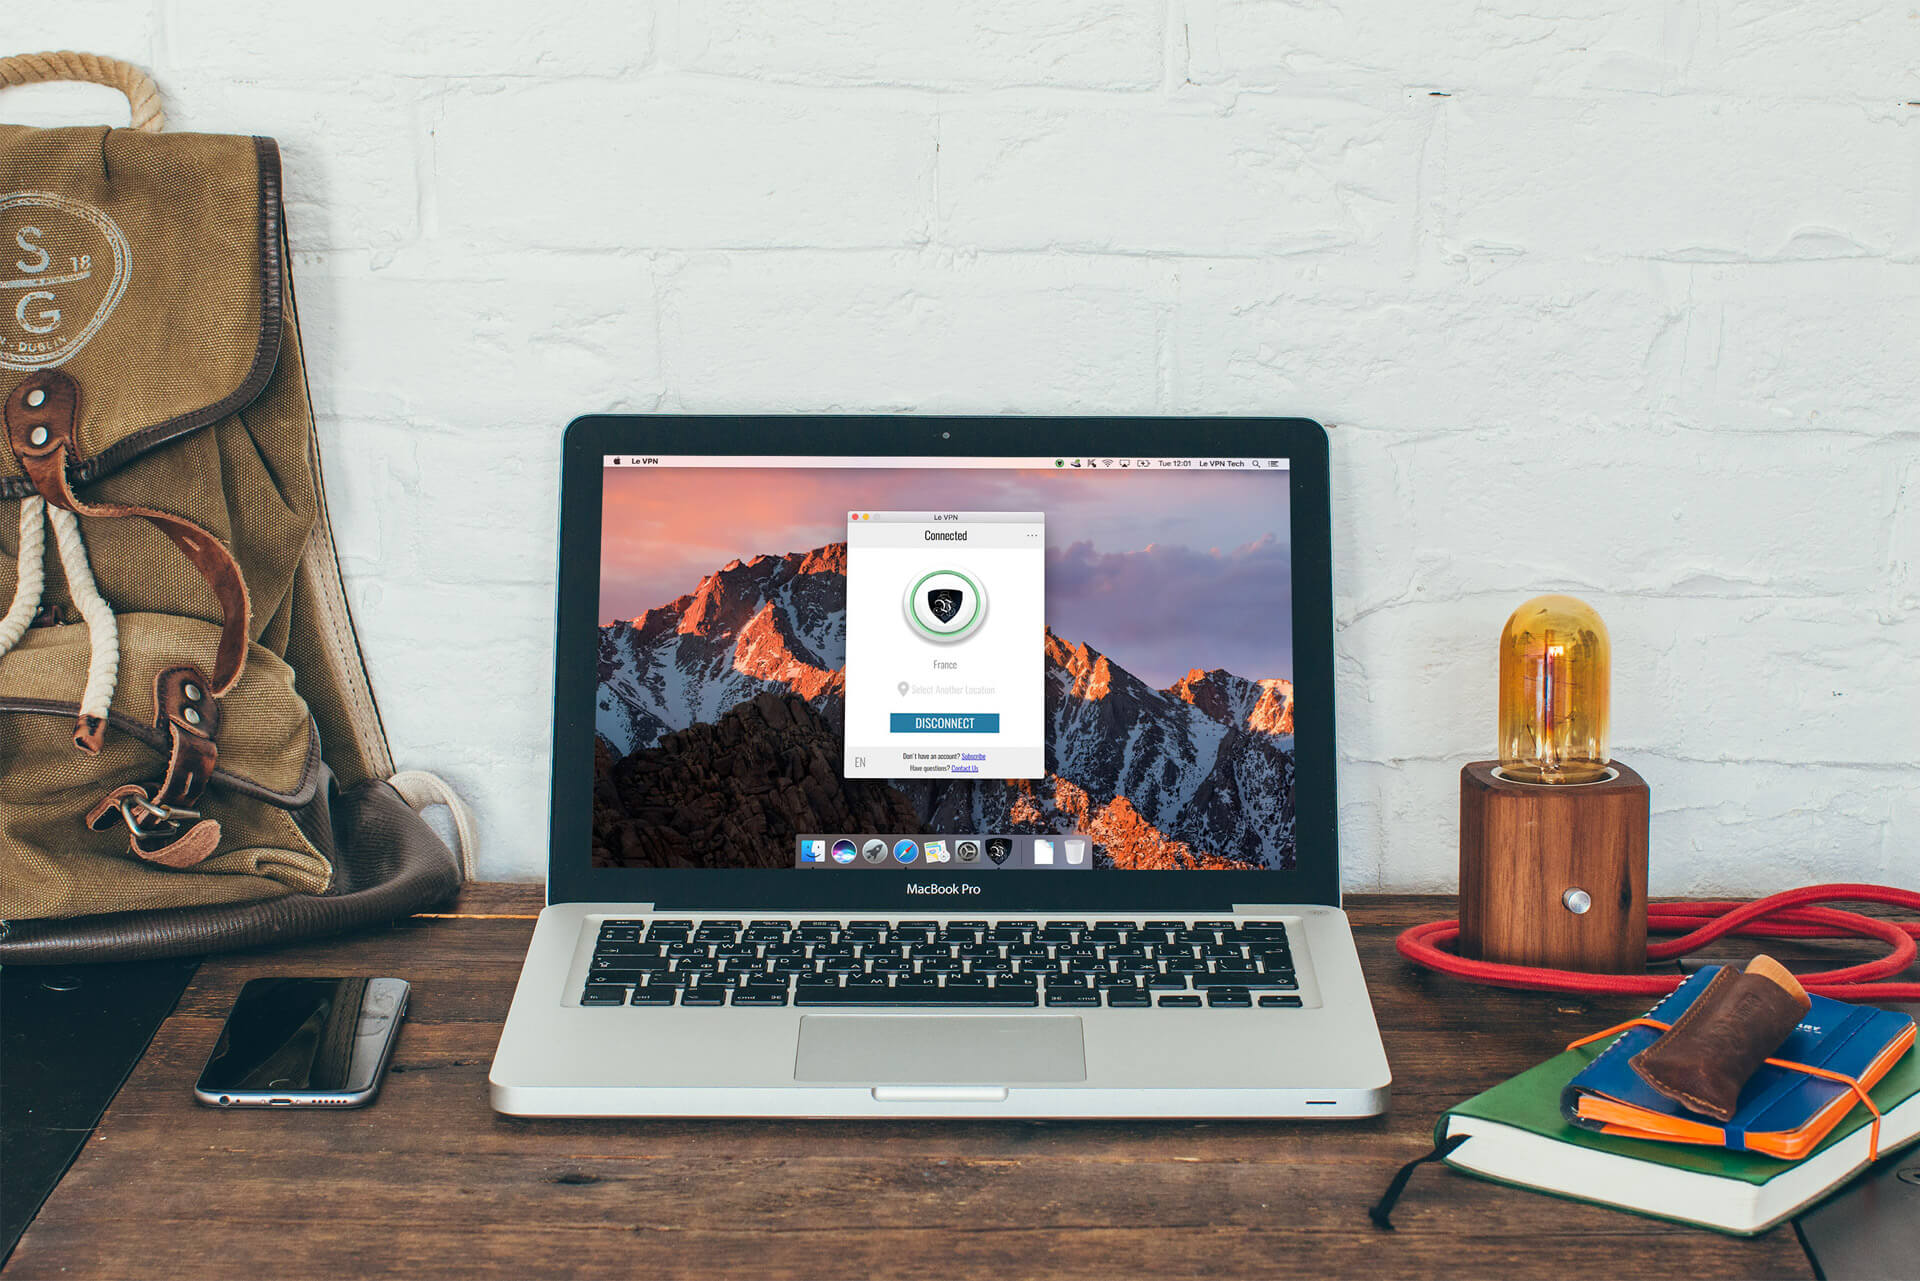 Best VPN for Mac OS X and Apple devices